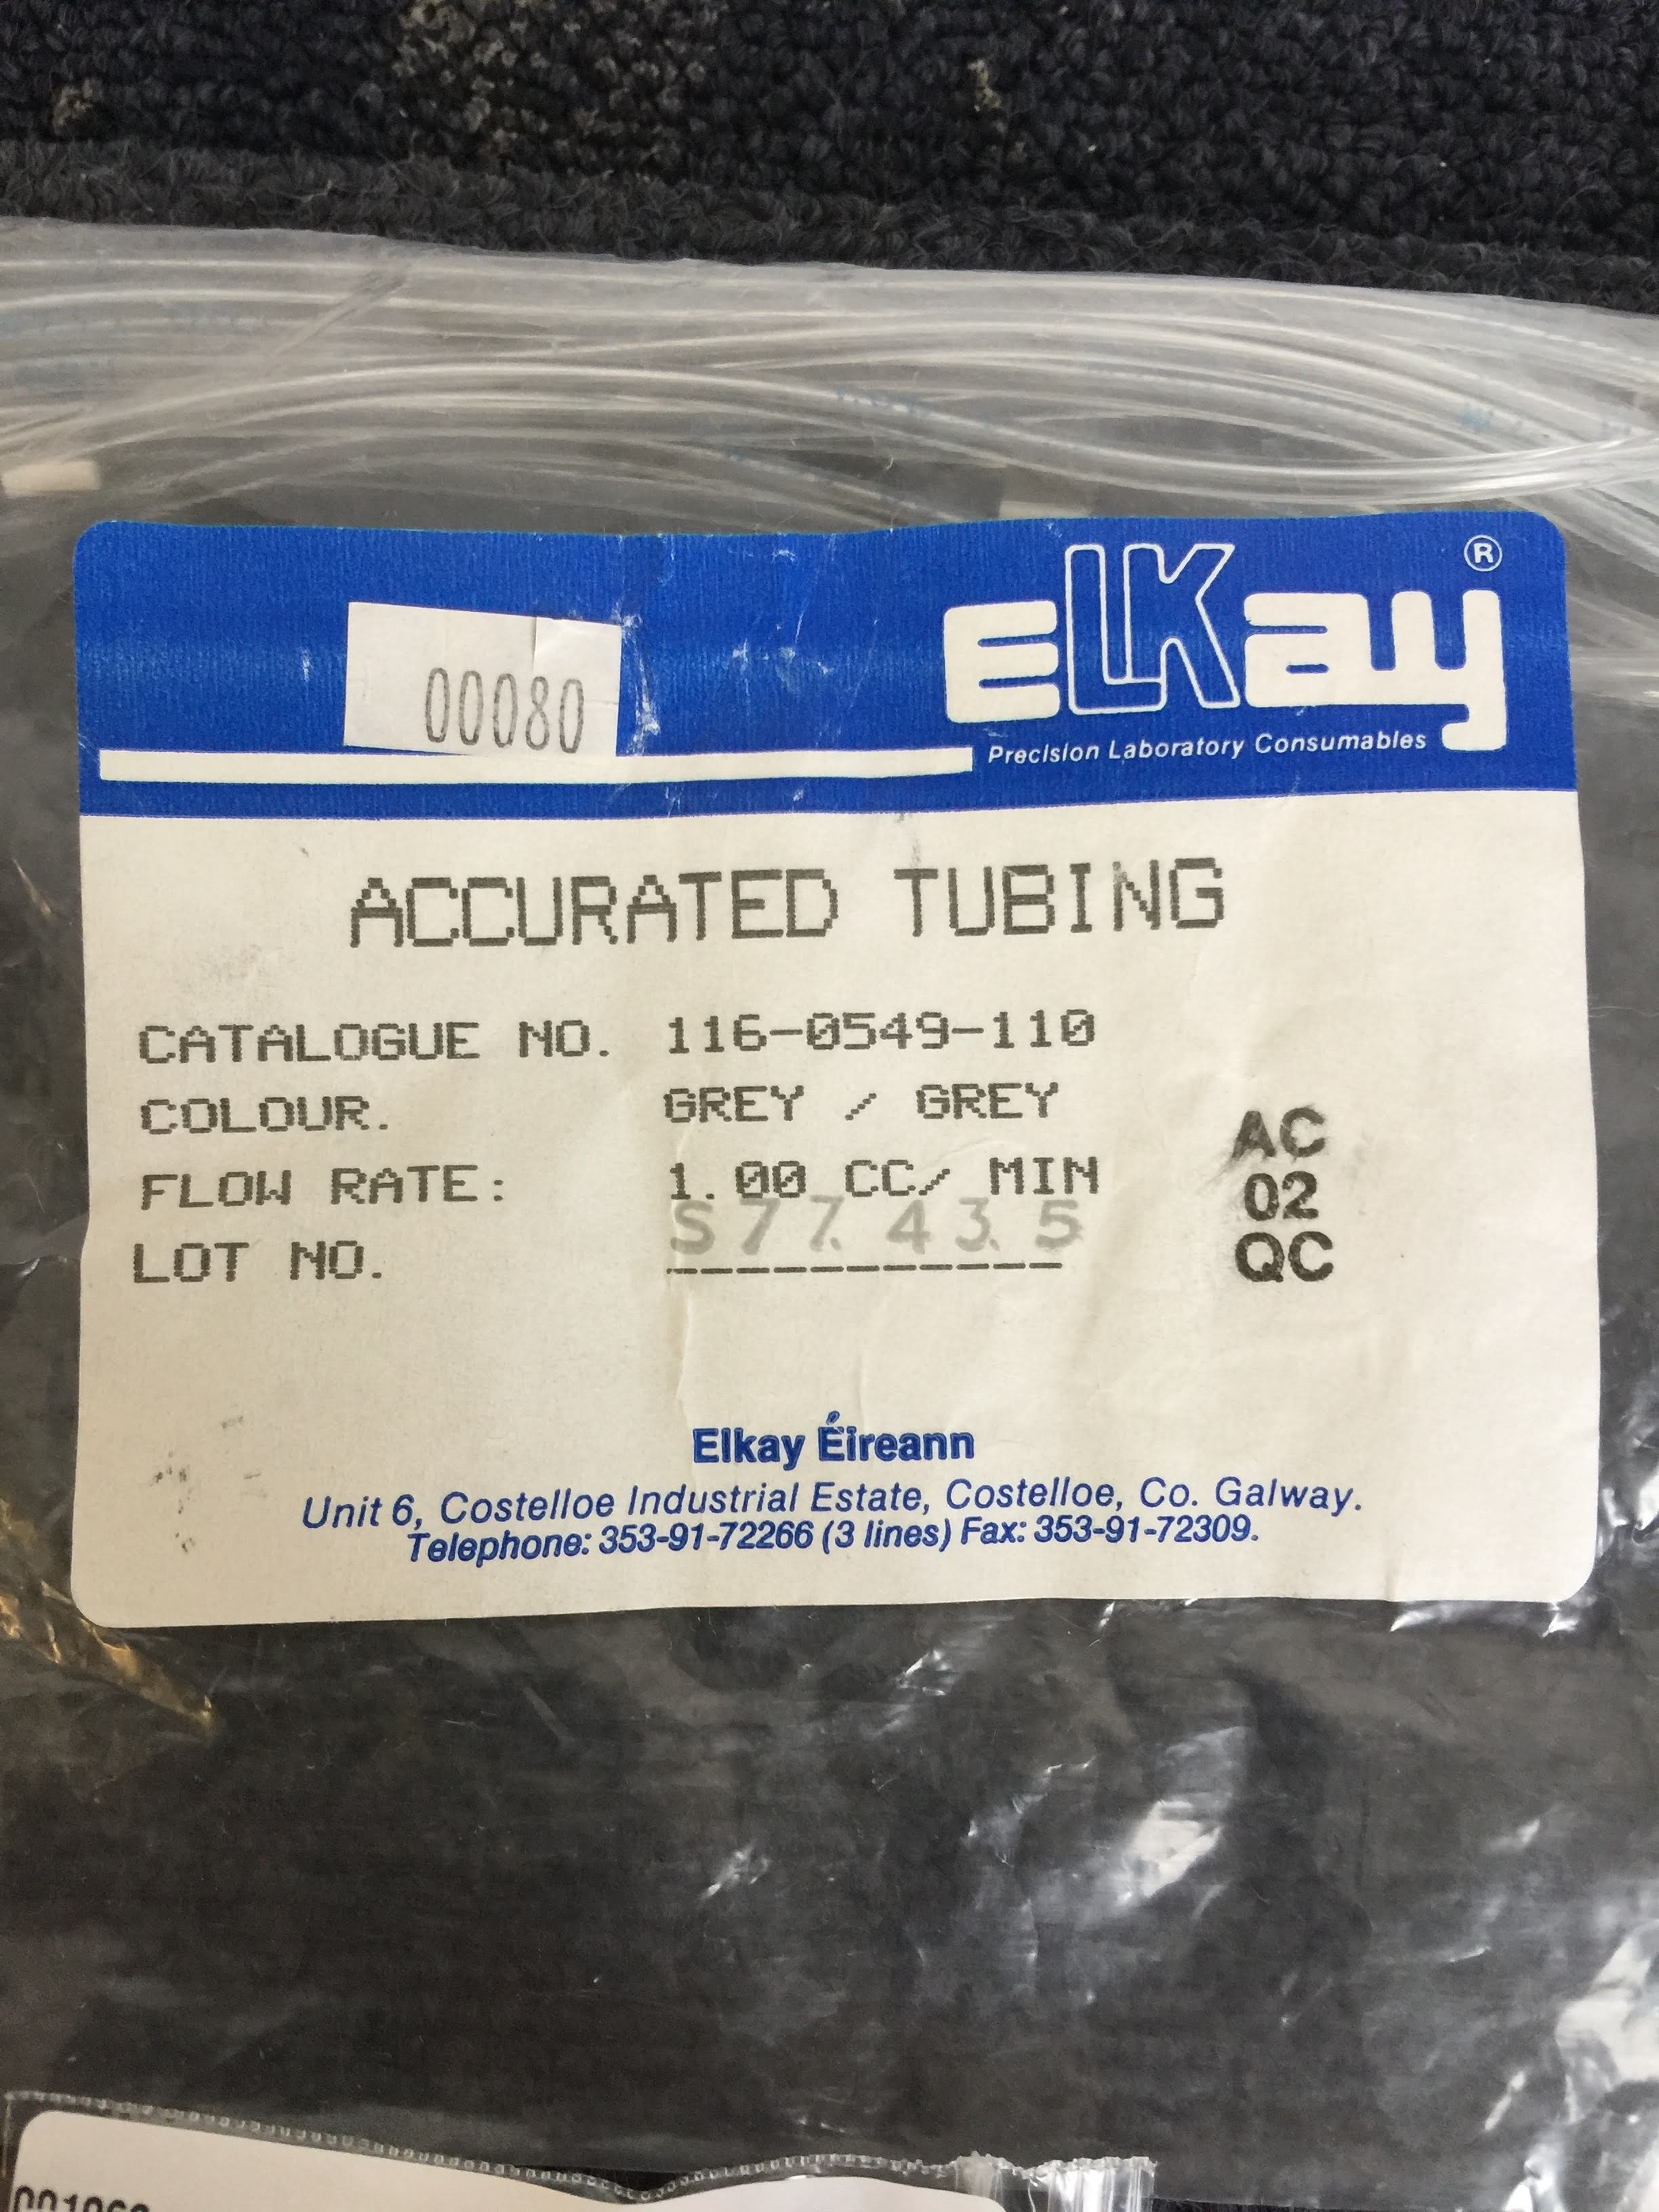 Elkay Accurated Tubing Product Information